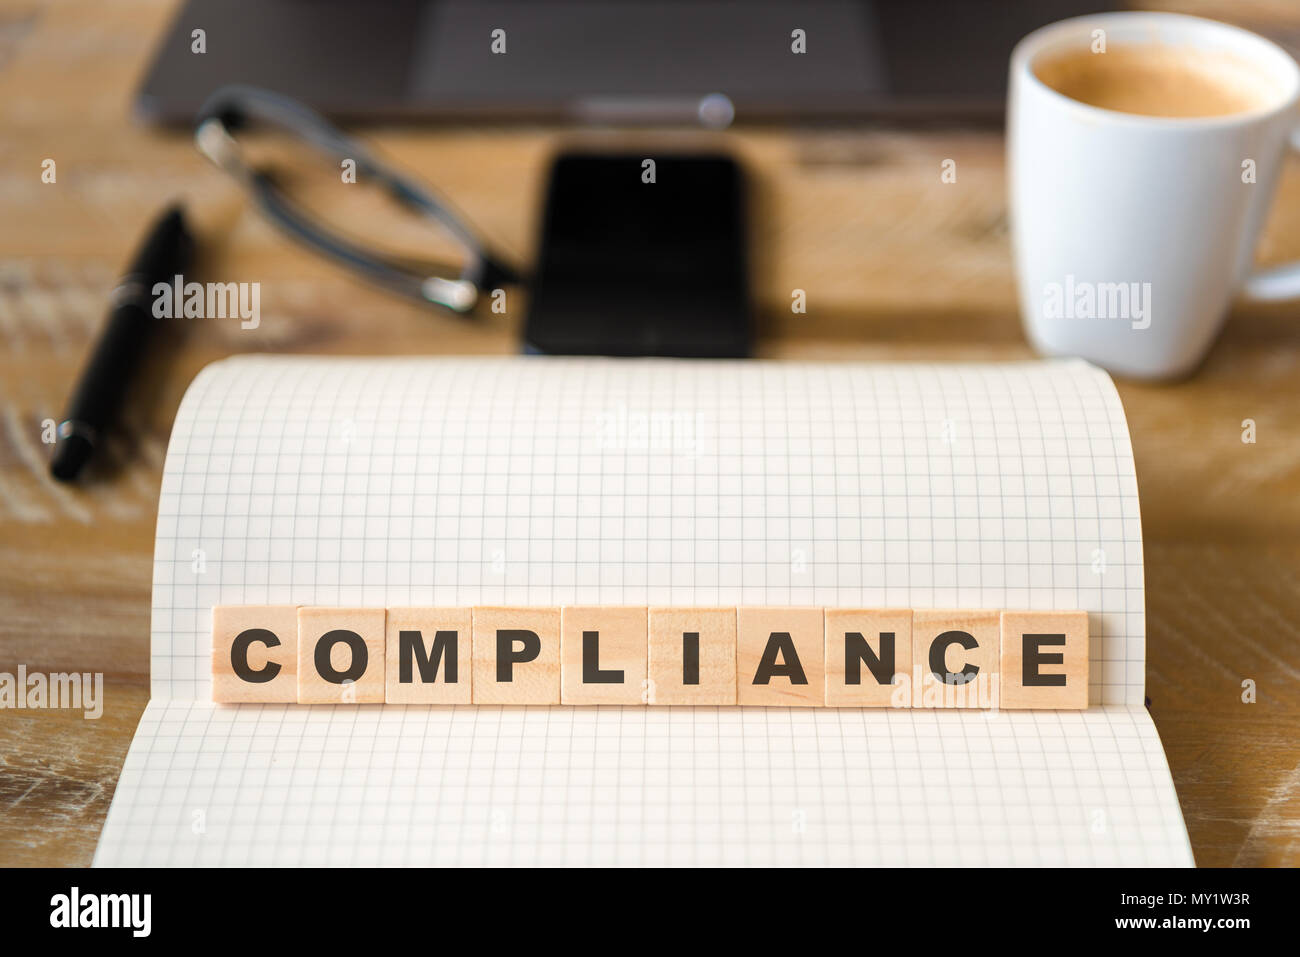 Closeup on notebook over wood table background, focus on wooden blocks with letters making Compliance text. - Stock Image